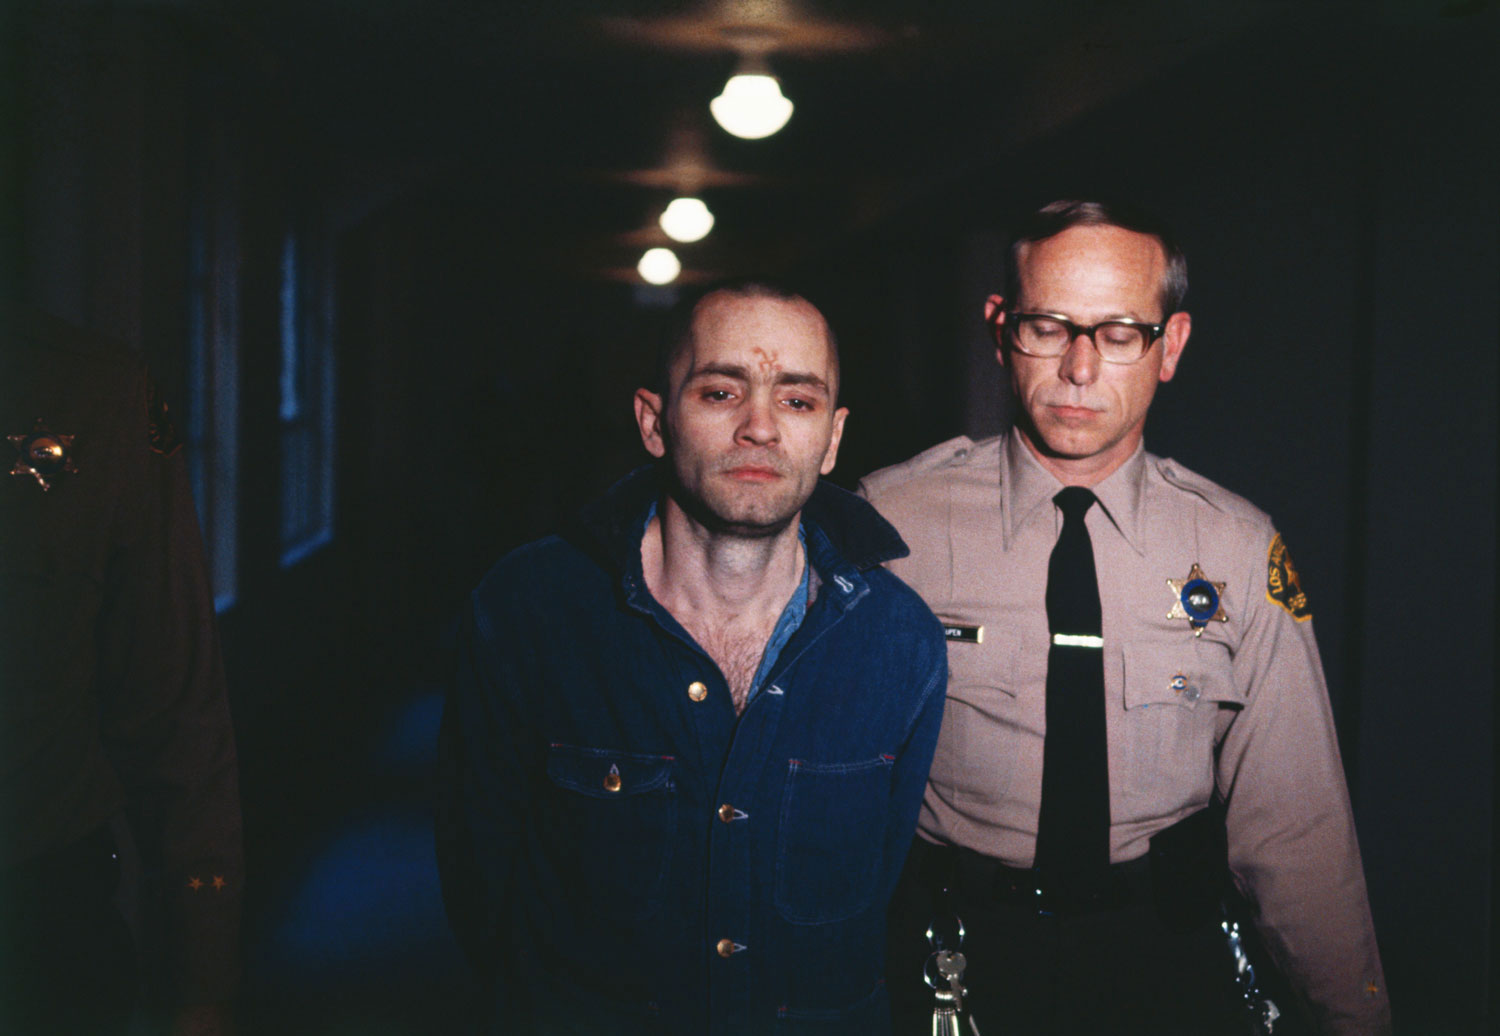 Convicted murderer Manson appears with a swastika carved into his forehead as he is led back to the courtroom to hear the penalty he and this three female followers must pay for the Tate-LaBianca murders, on March 29, 1971.